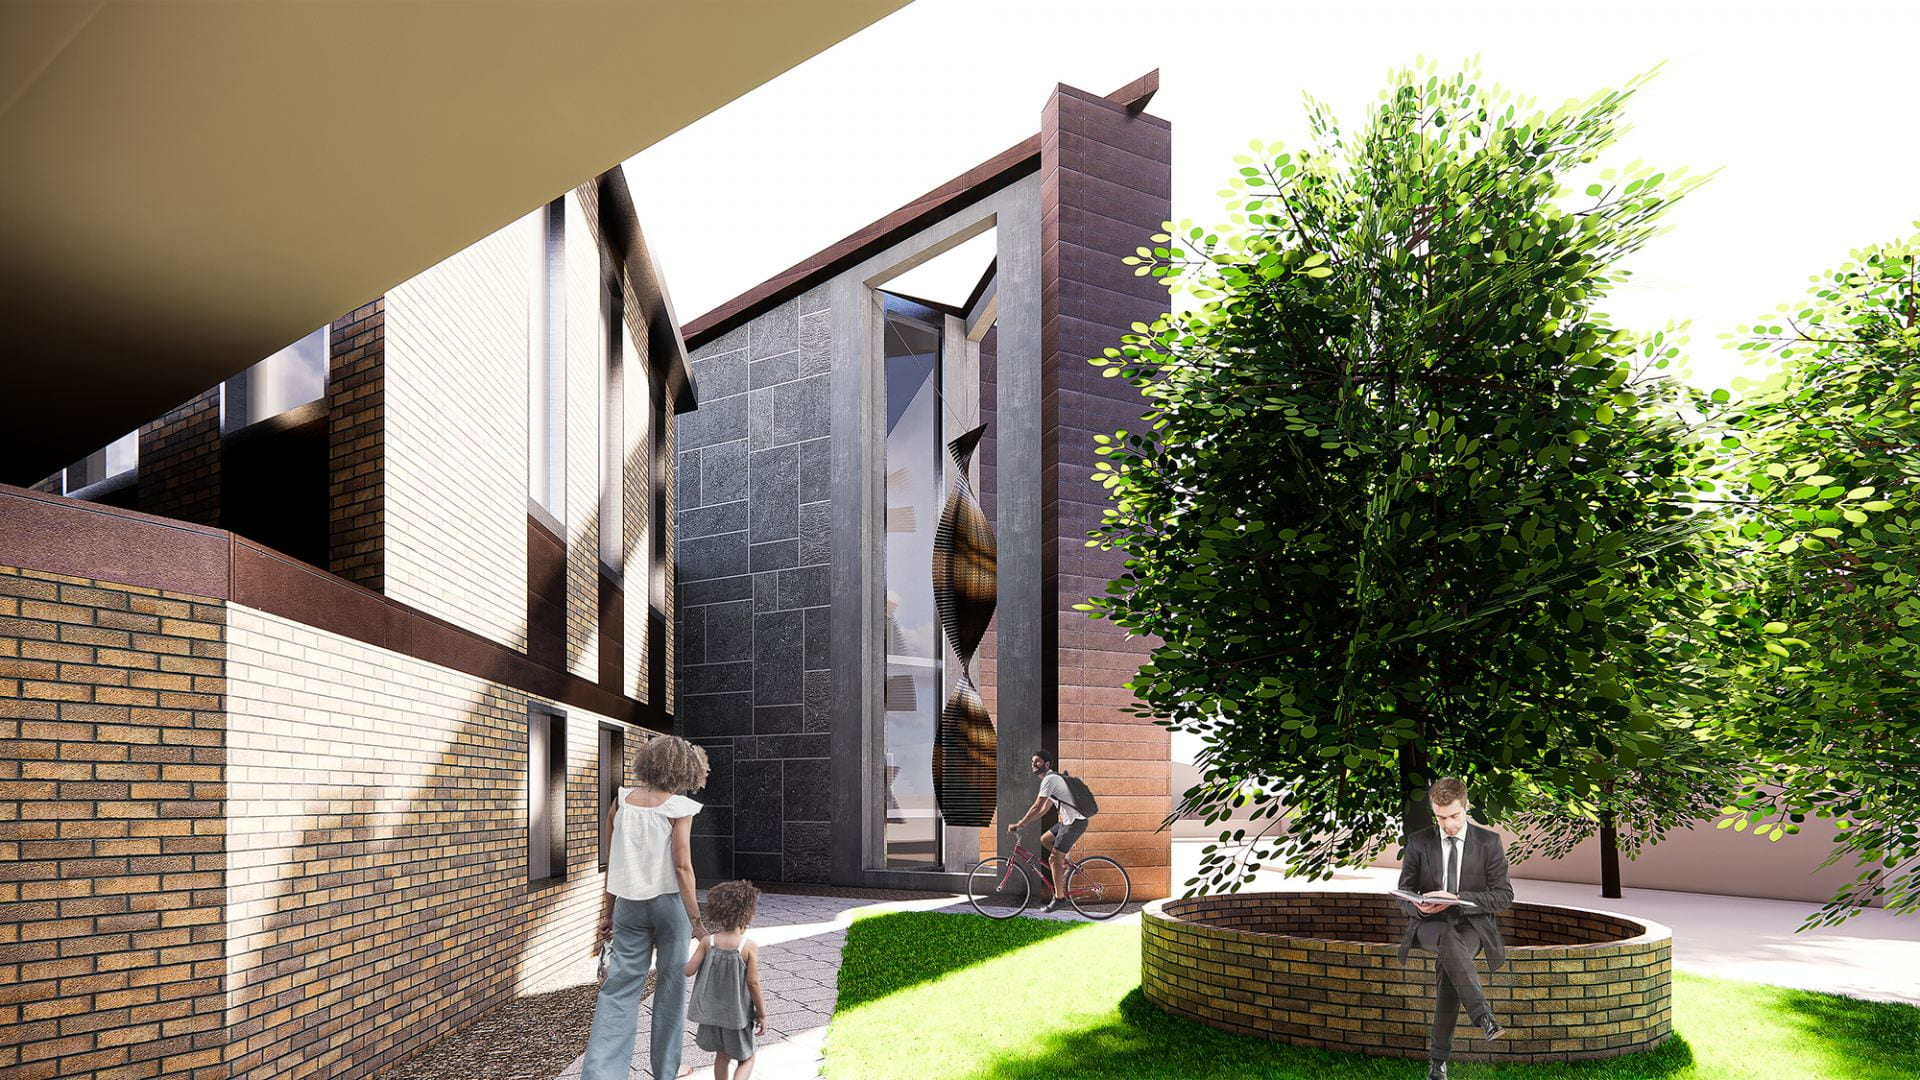 Virtually rendered collage showing a woman walking through the open outdoor space next to the building